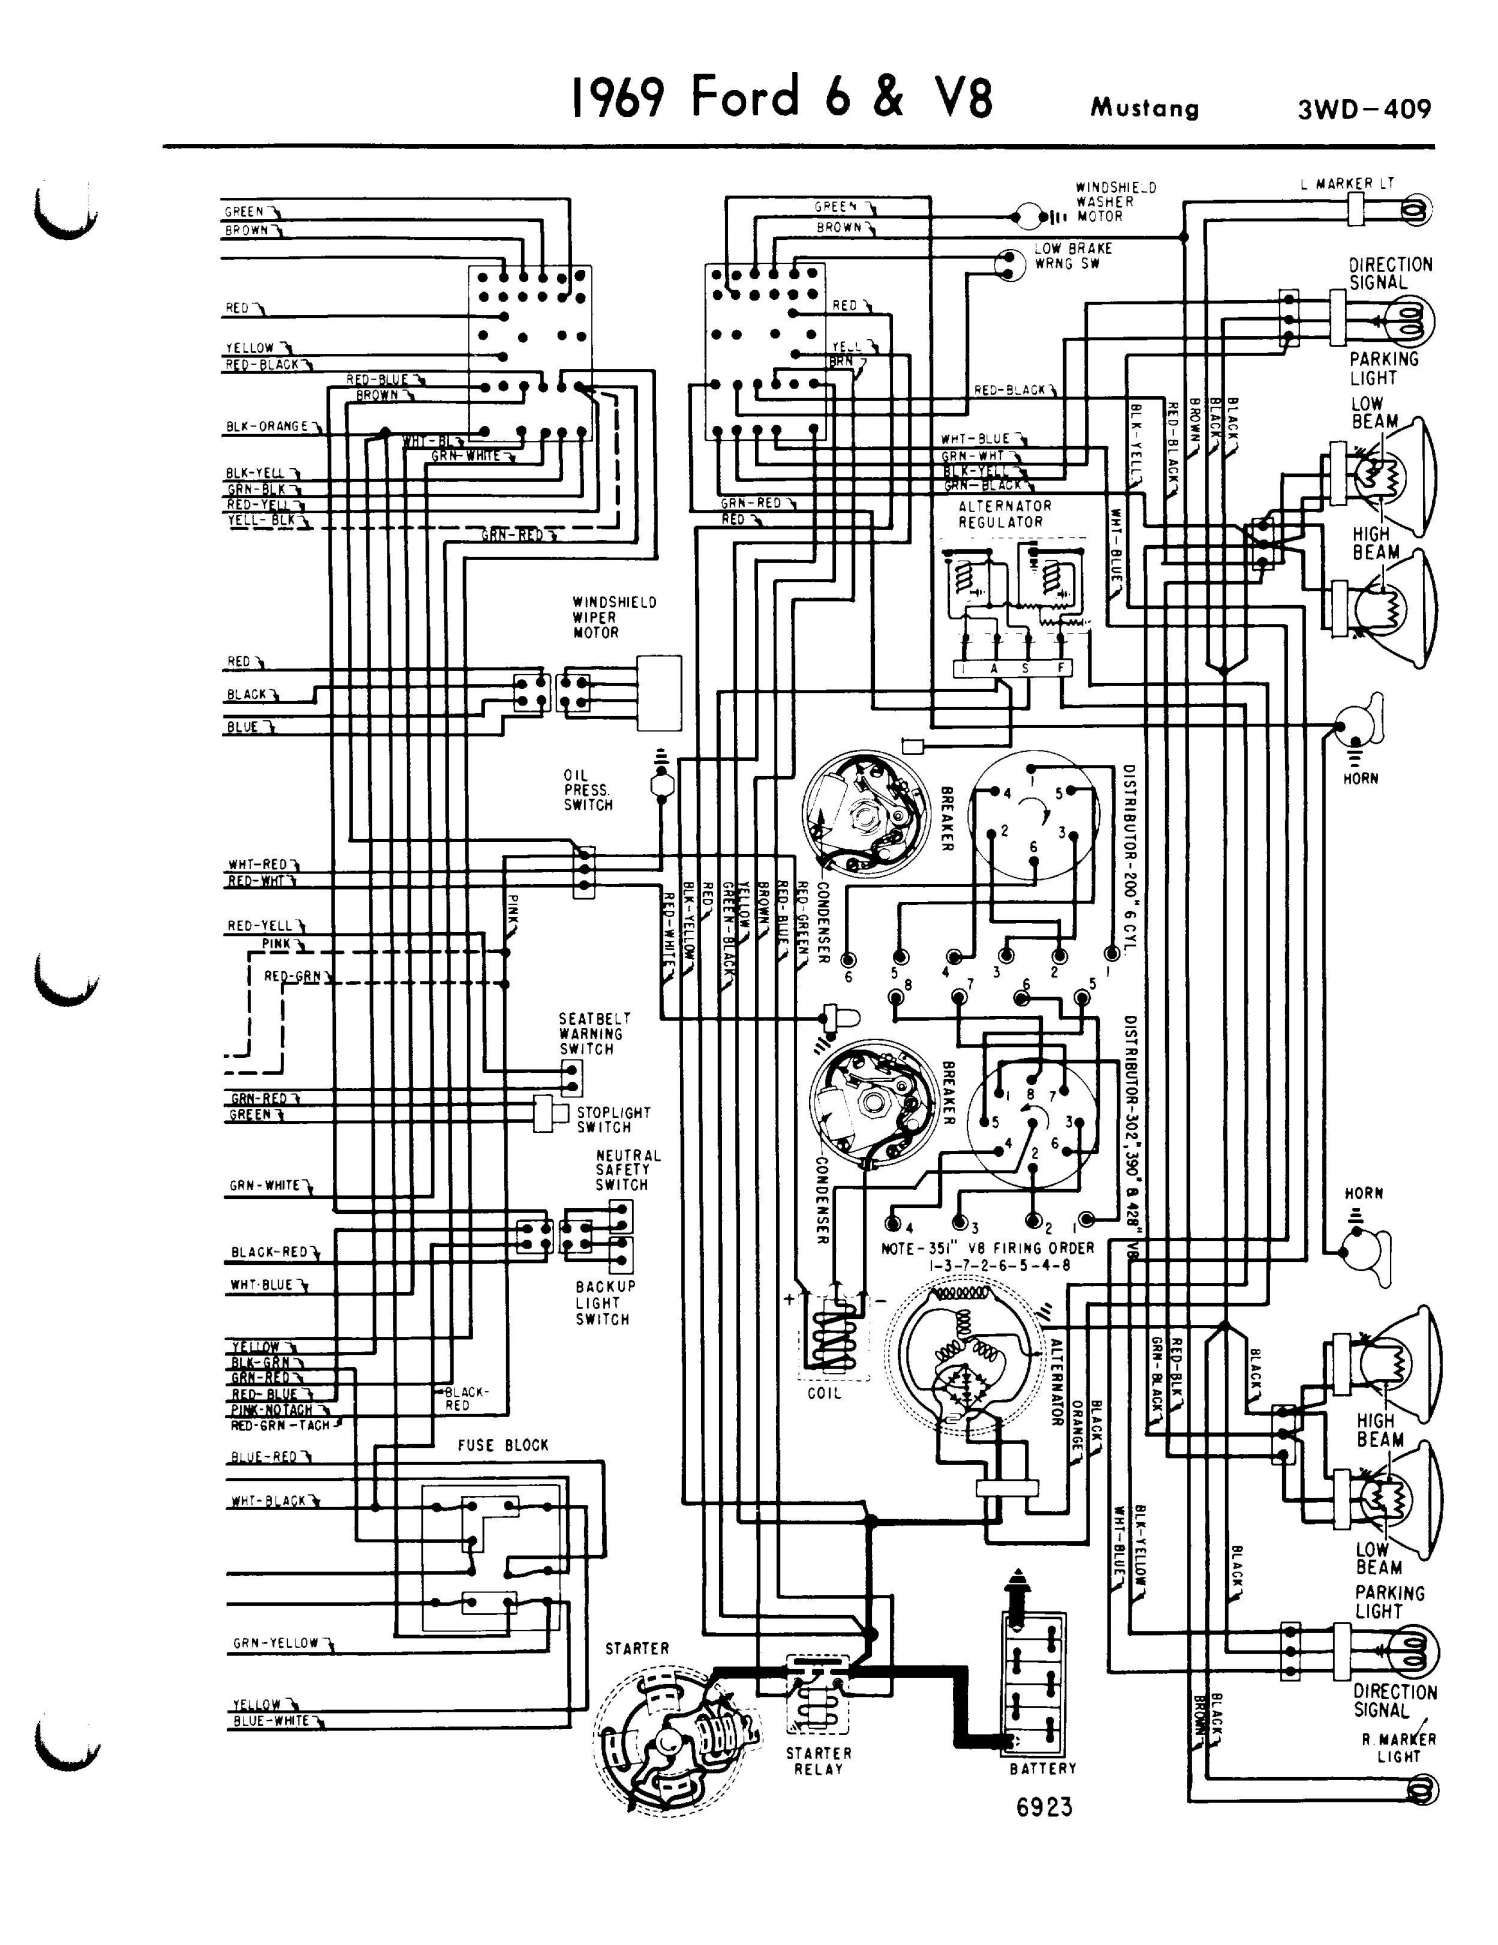 1980 Mustang Wiring Diagram - wiring diagram load-title -  load-title.pennyapp.itPennyApp